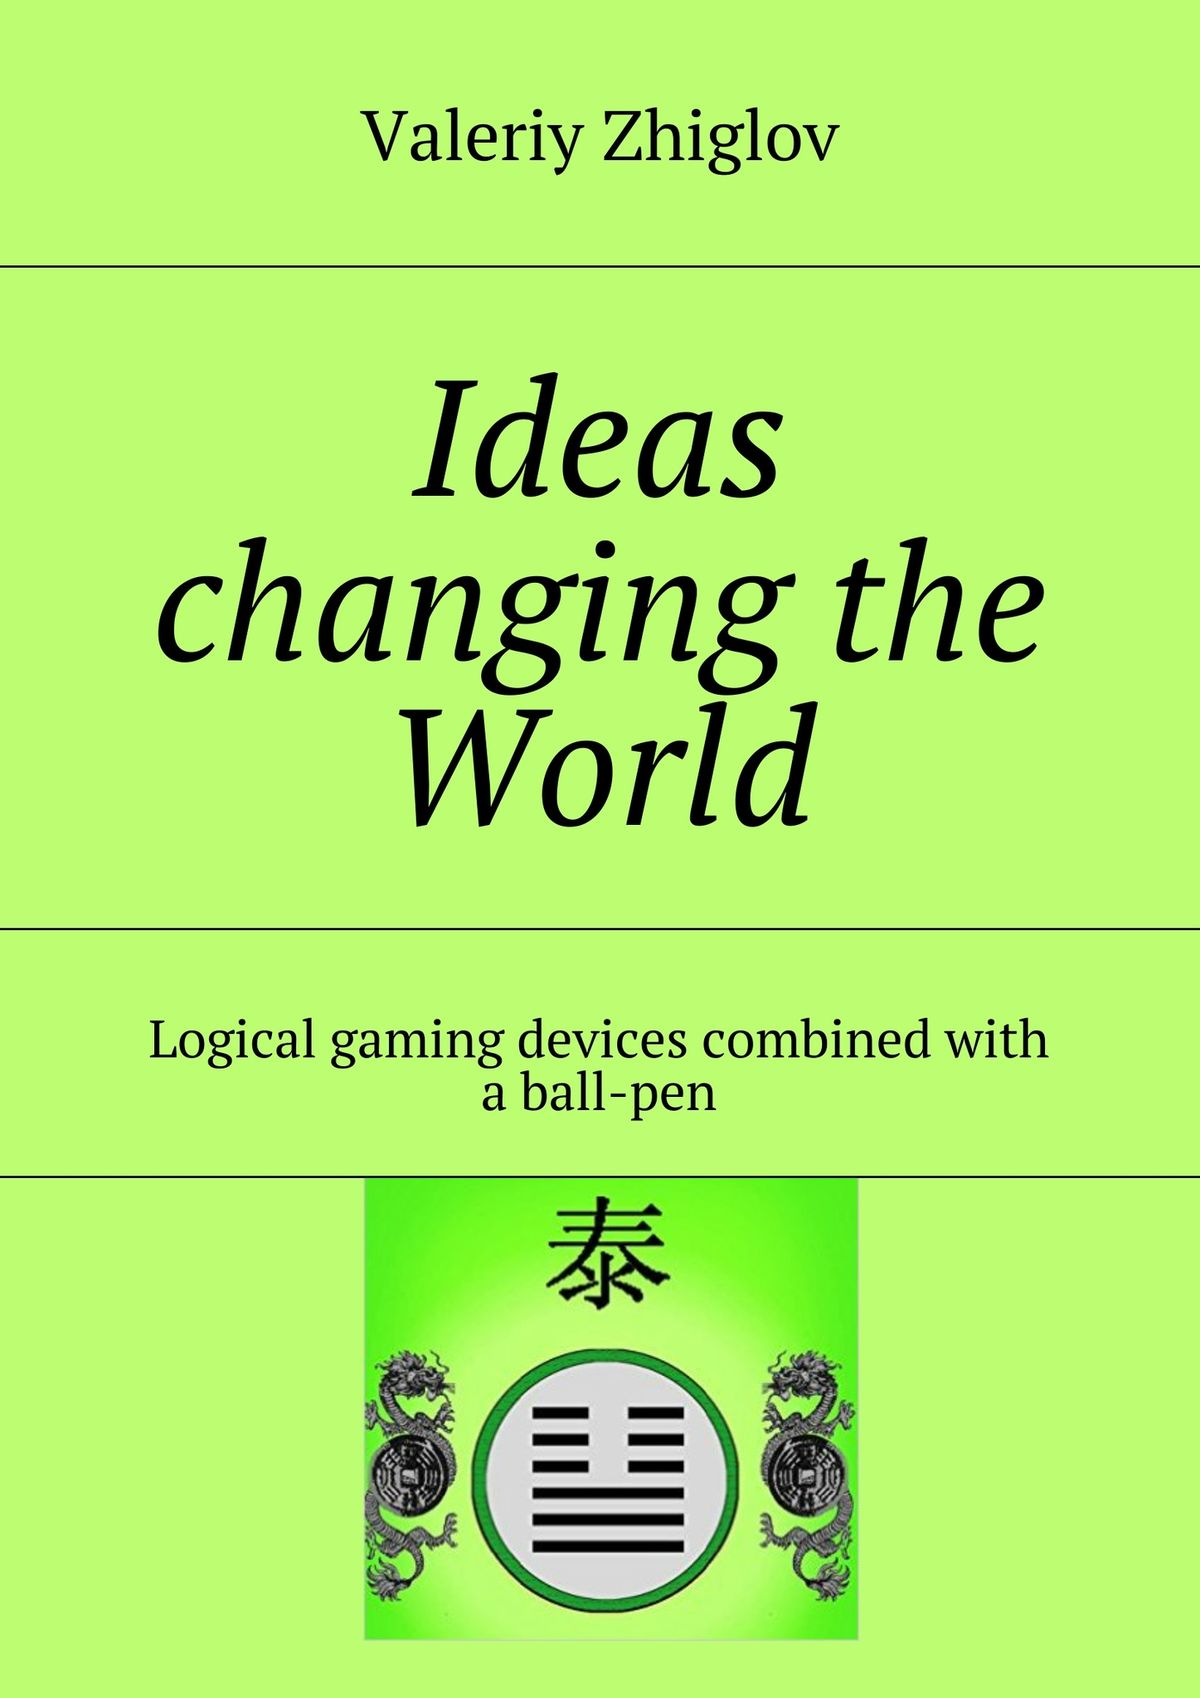 лучшая цена Valeriy Zhiglov Ideas changing the World. Logical gaming devices combined with a ball-pen